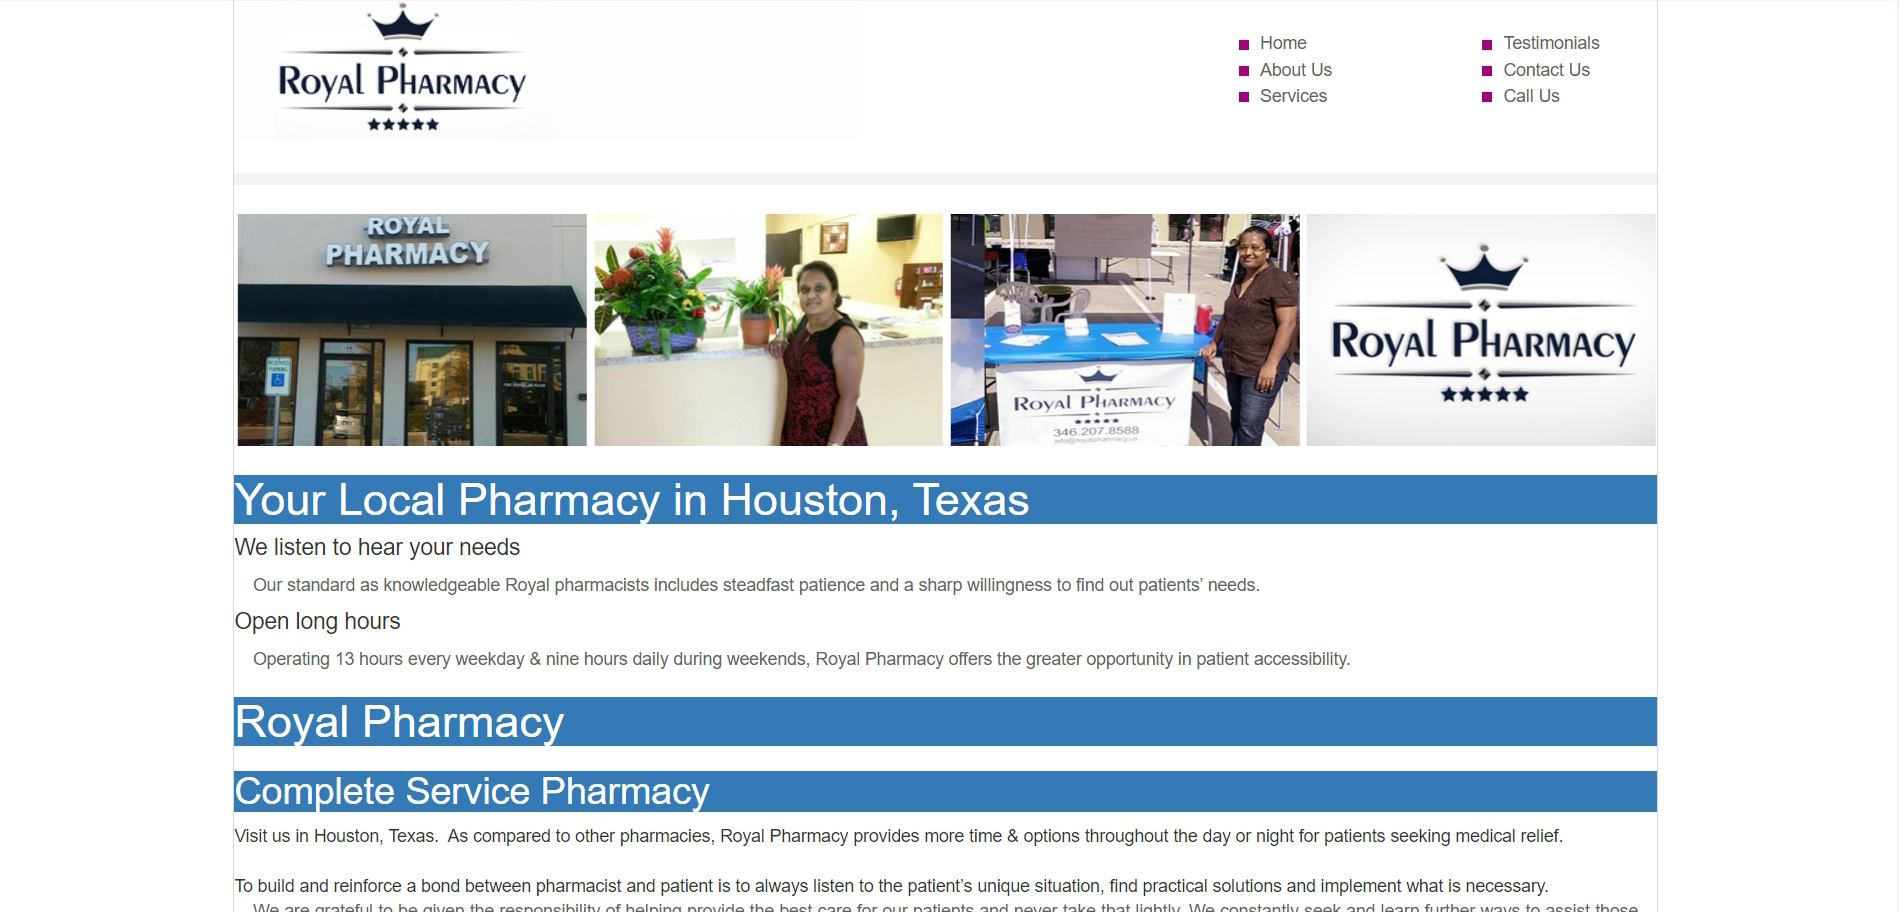 royalpharmacy-us-houston-texas-thewebmiracle